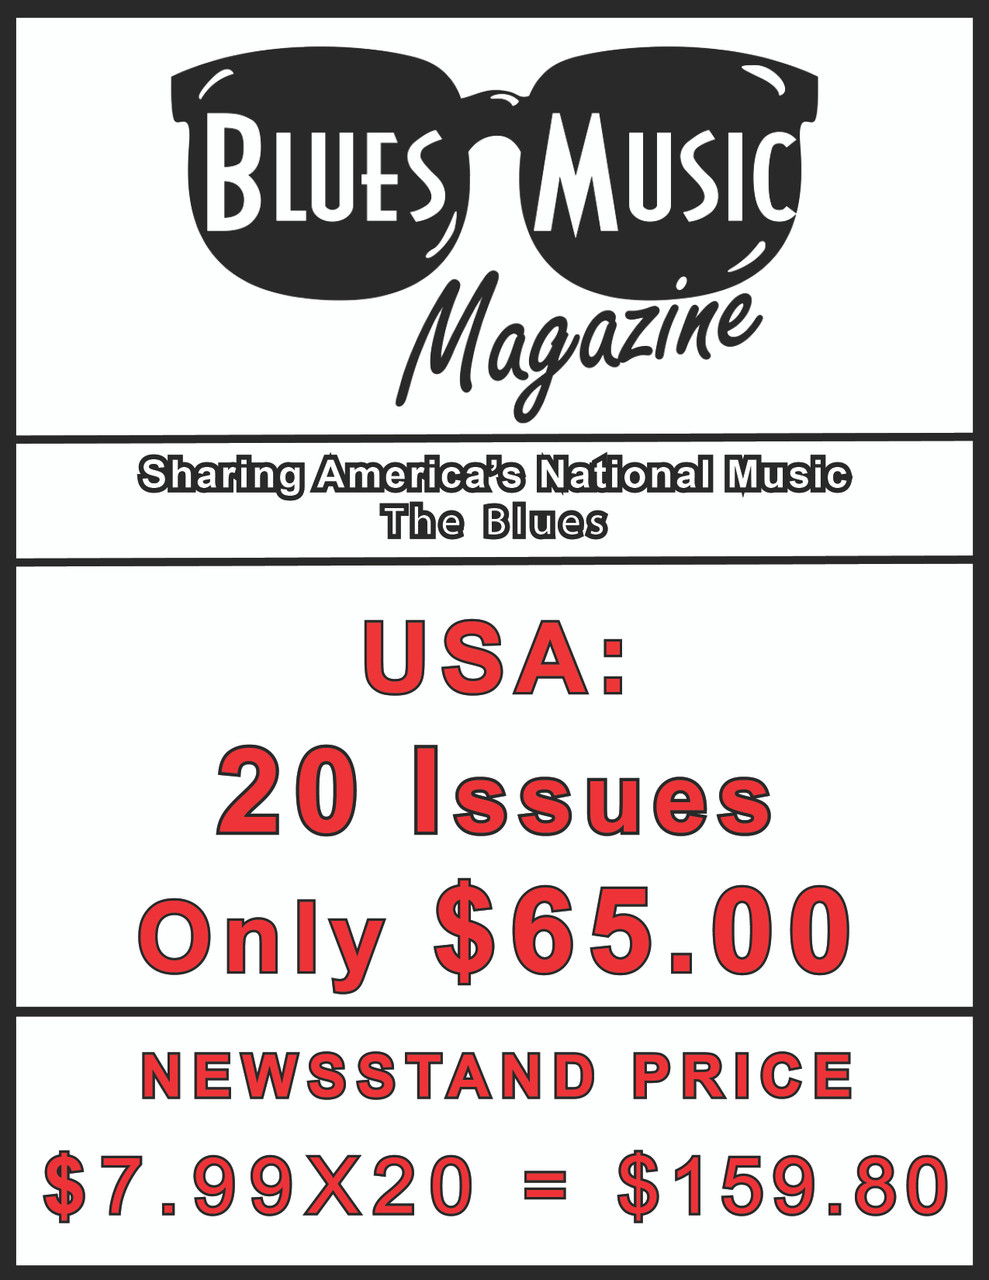 USA SUBSCRIBE OR RENEW FOR 20 ISSUES = 5 YEARS